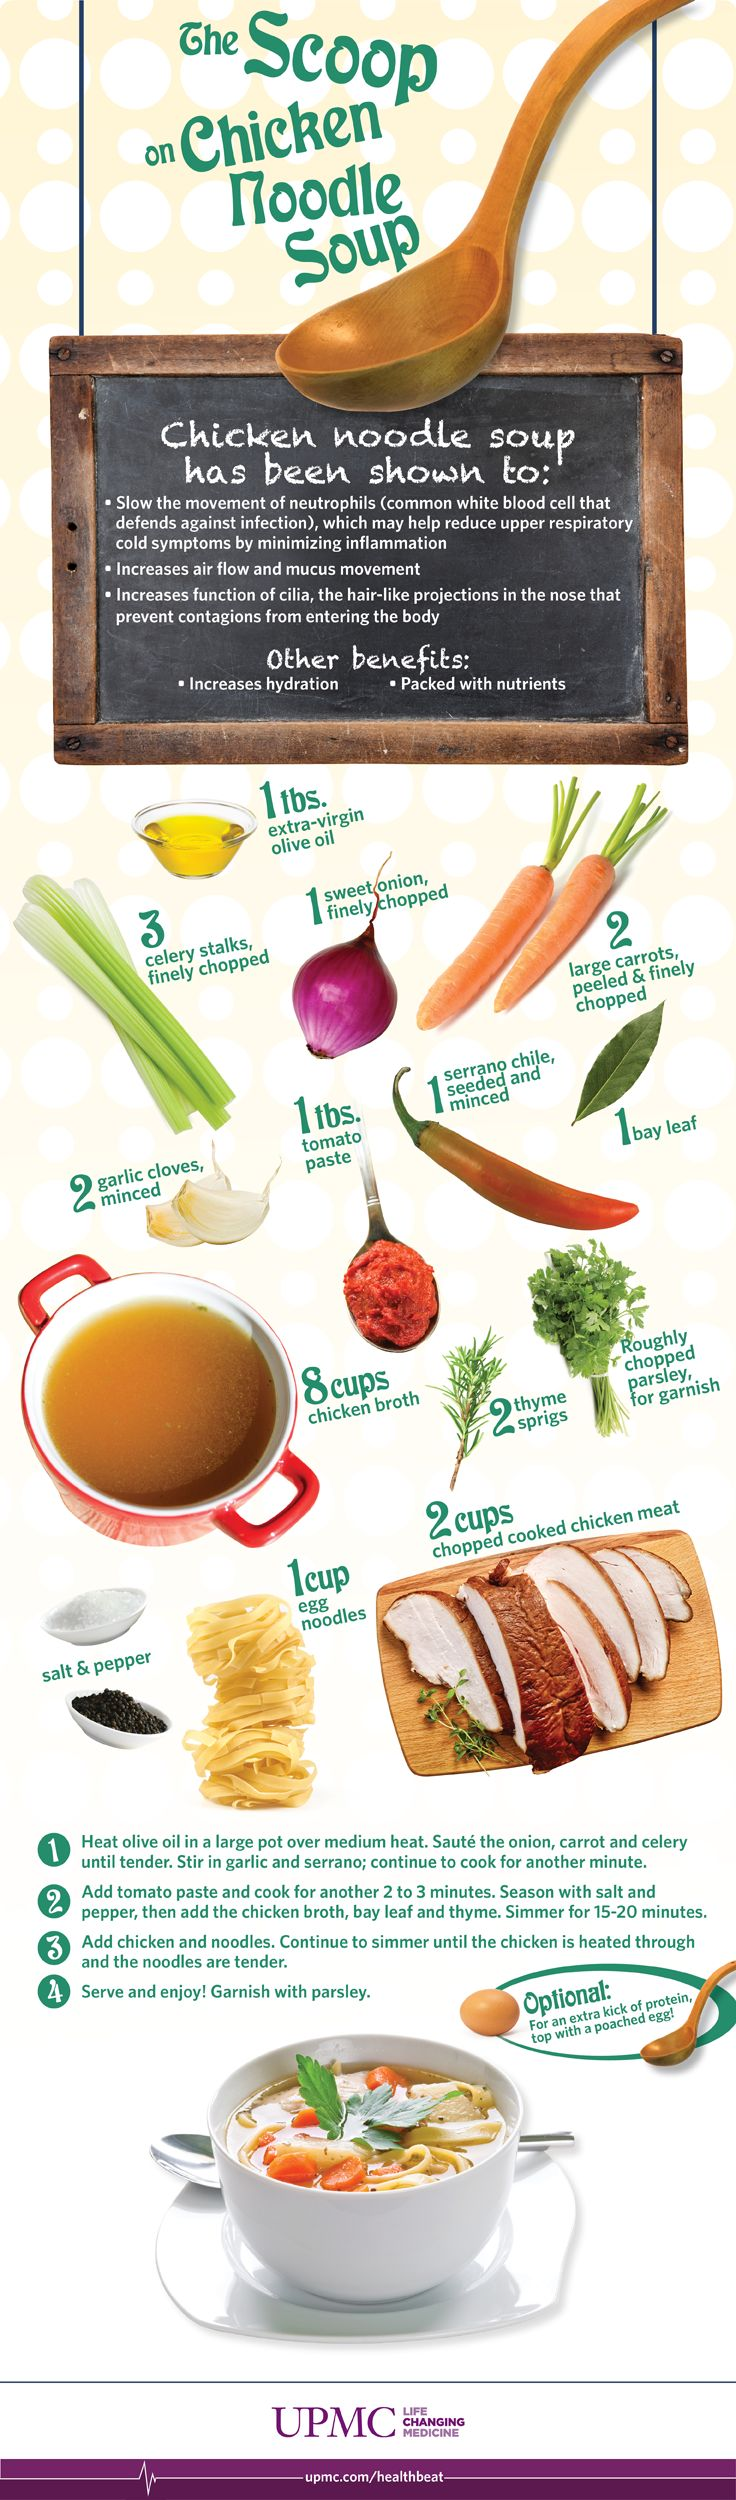 The Scoop on Chicken Noodle Soup